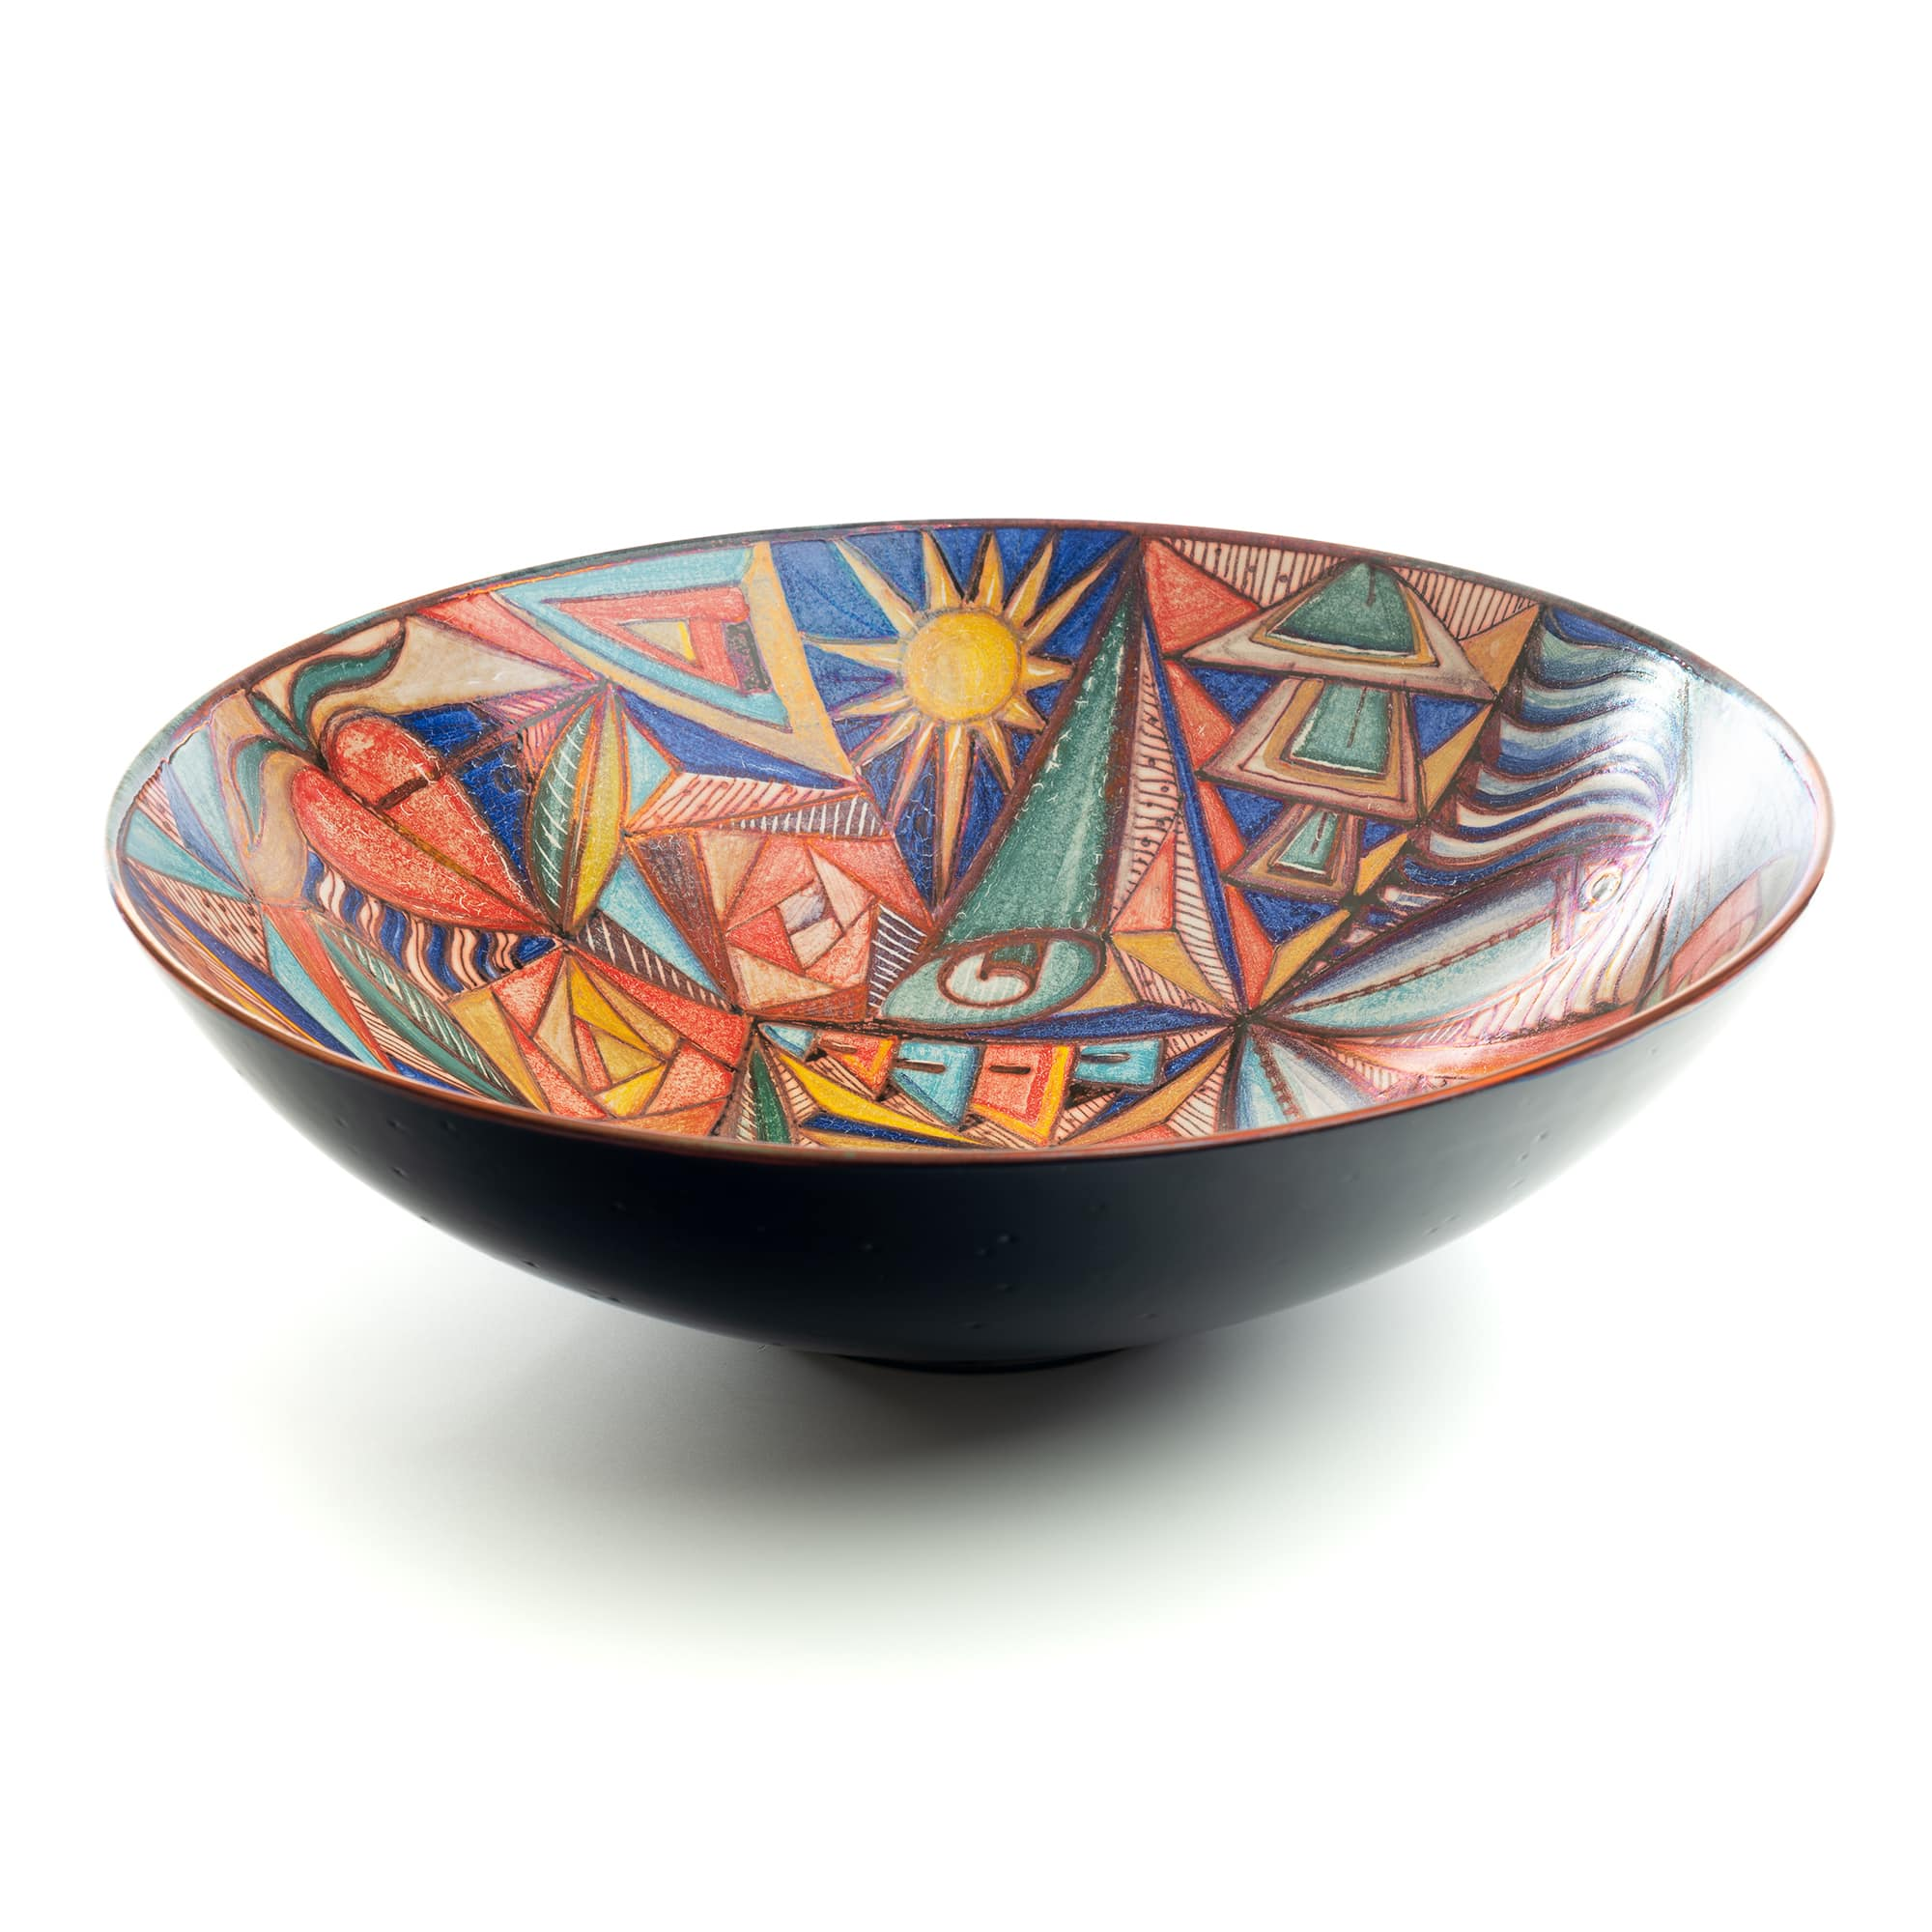 Vignoli large centerpiece bowl abstract art deco